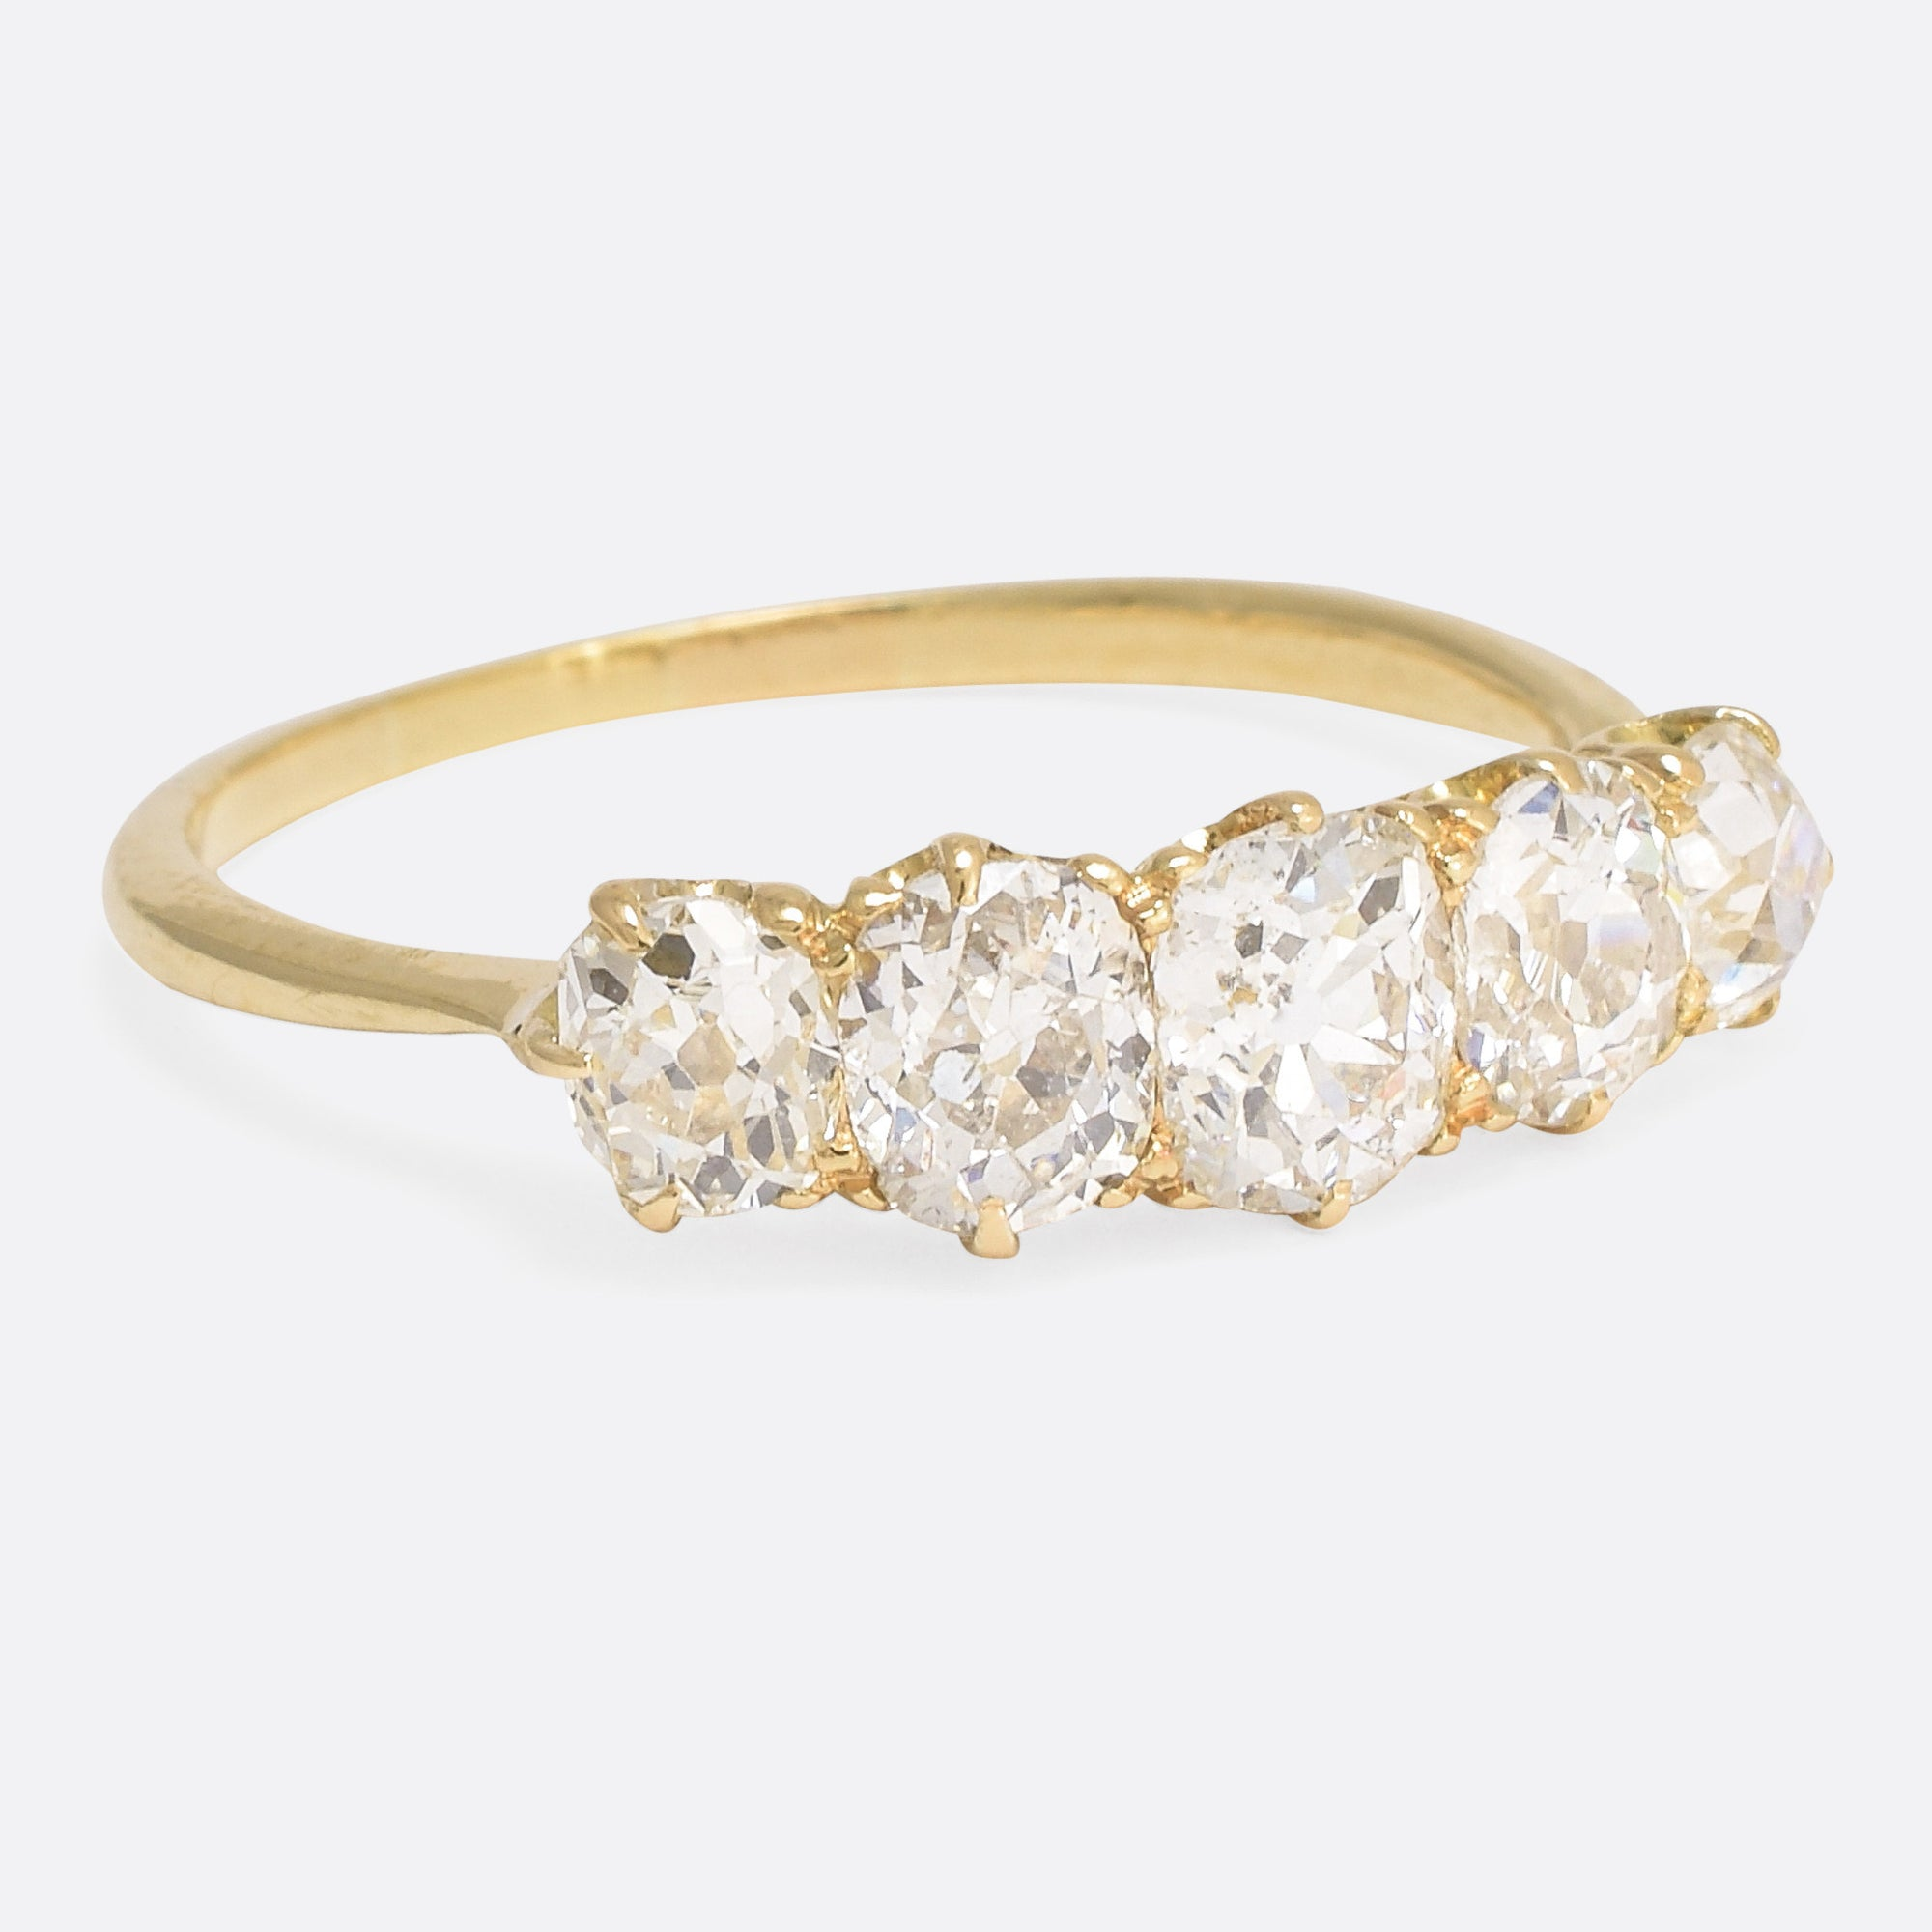 eternity gold de engagement marsac rings from diamond white stone ring half image